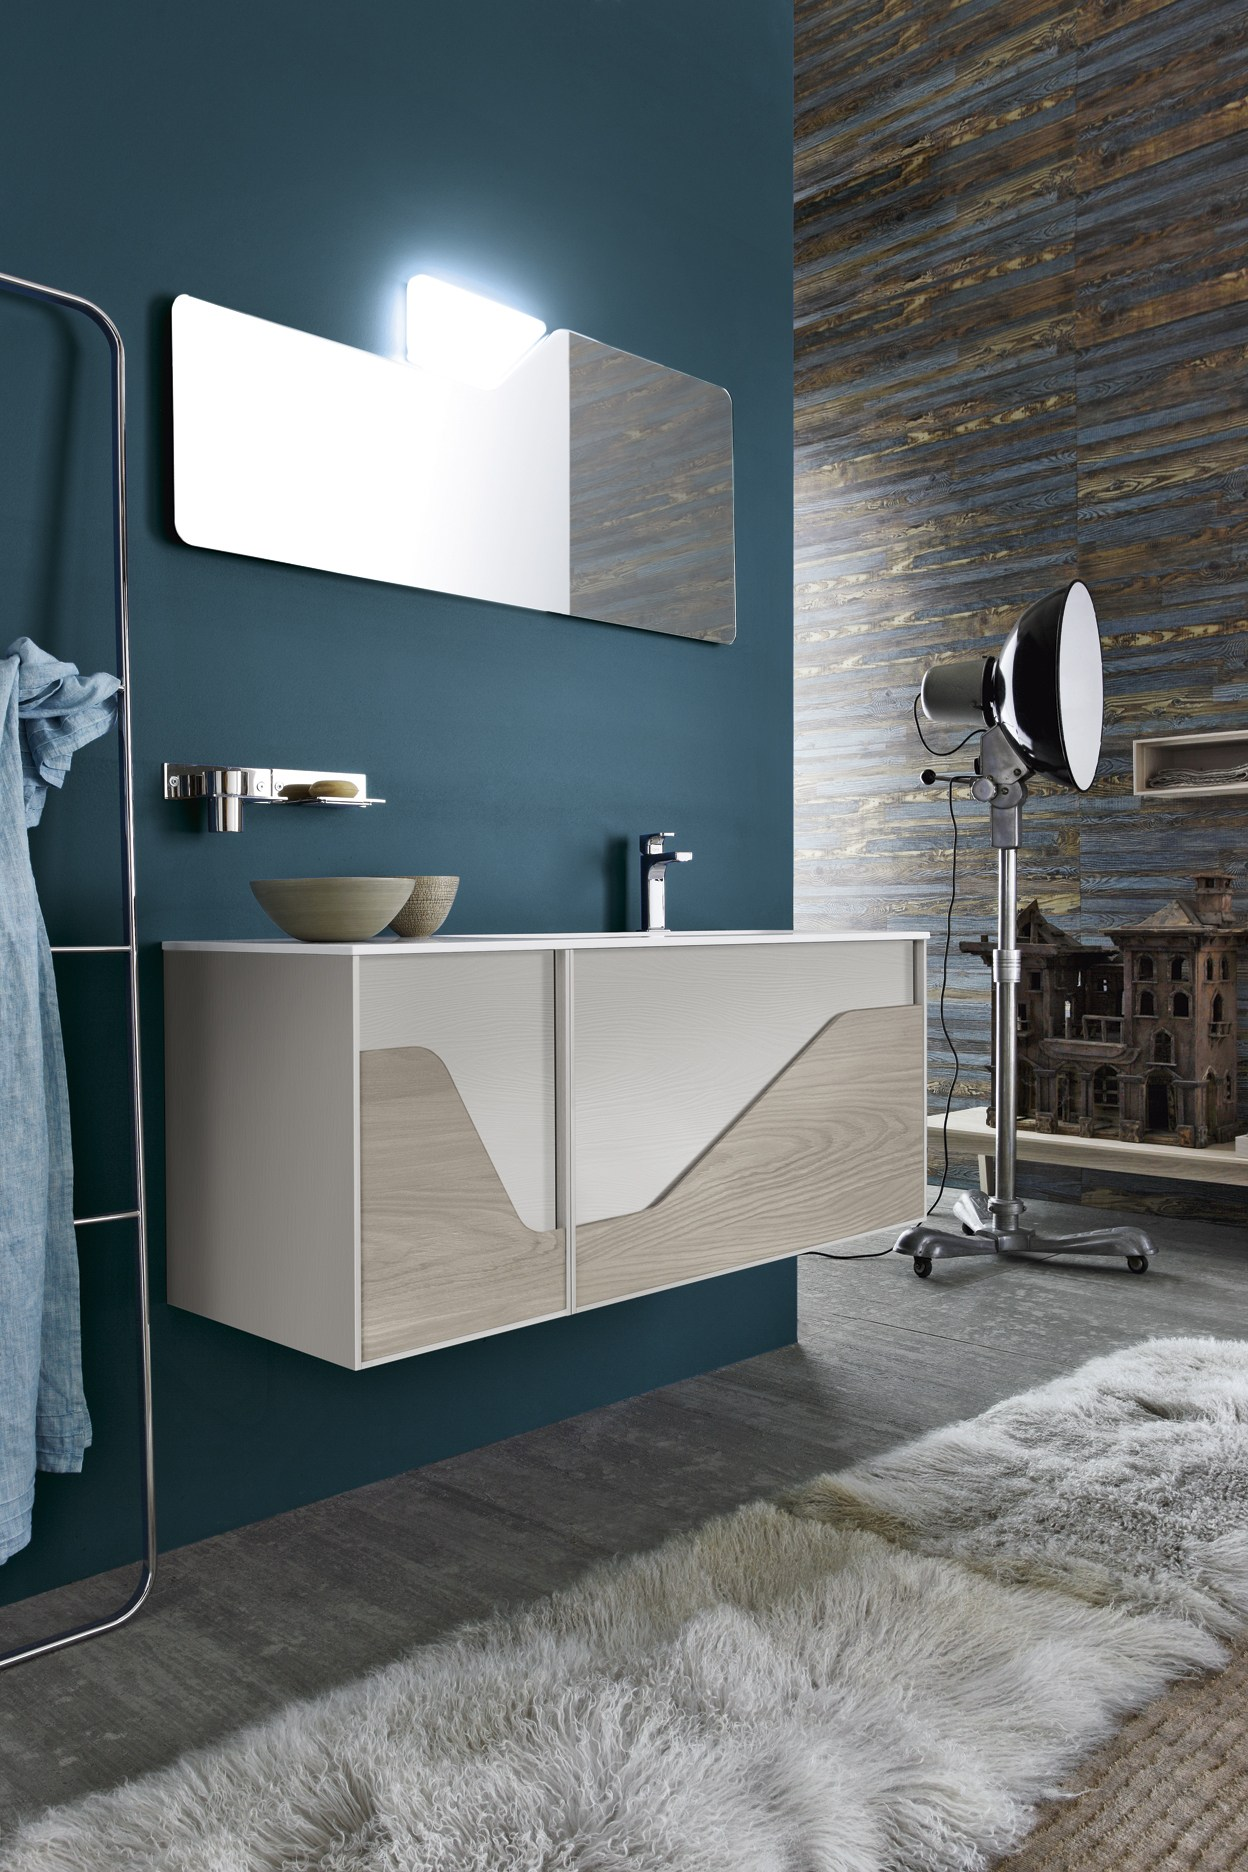 Bathroom furniture set free 68 69 by cerasa design stefano spessotto lorella agnoletto - Bagni italiani catalogo ...